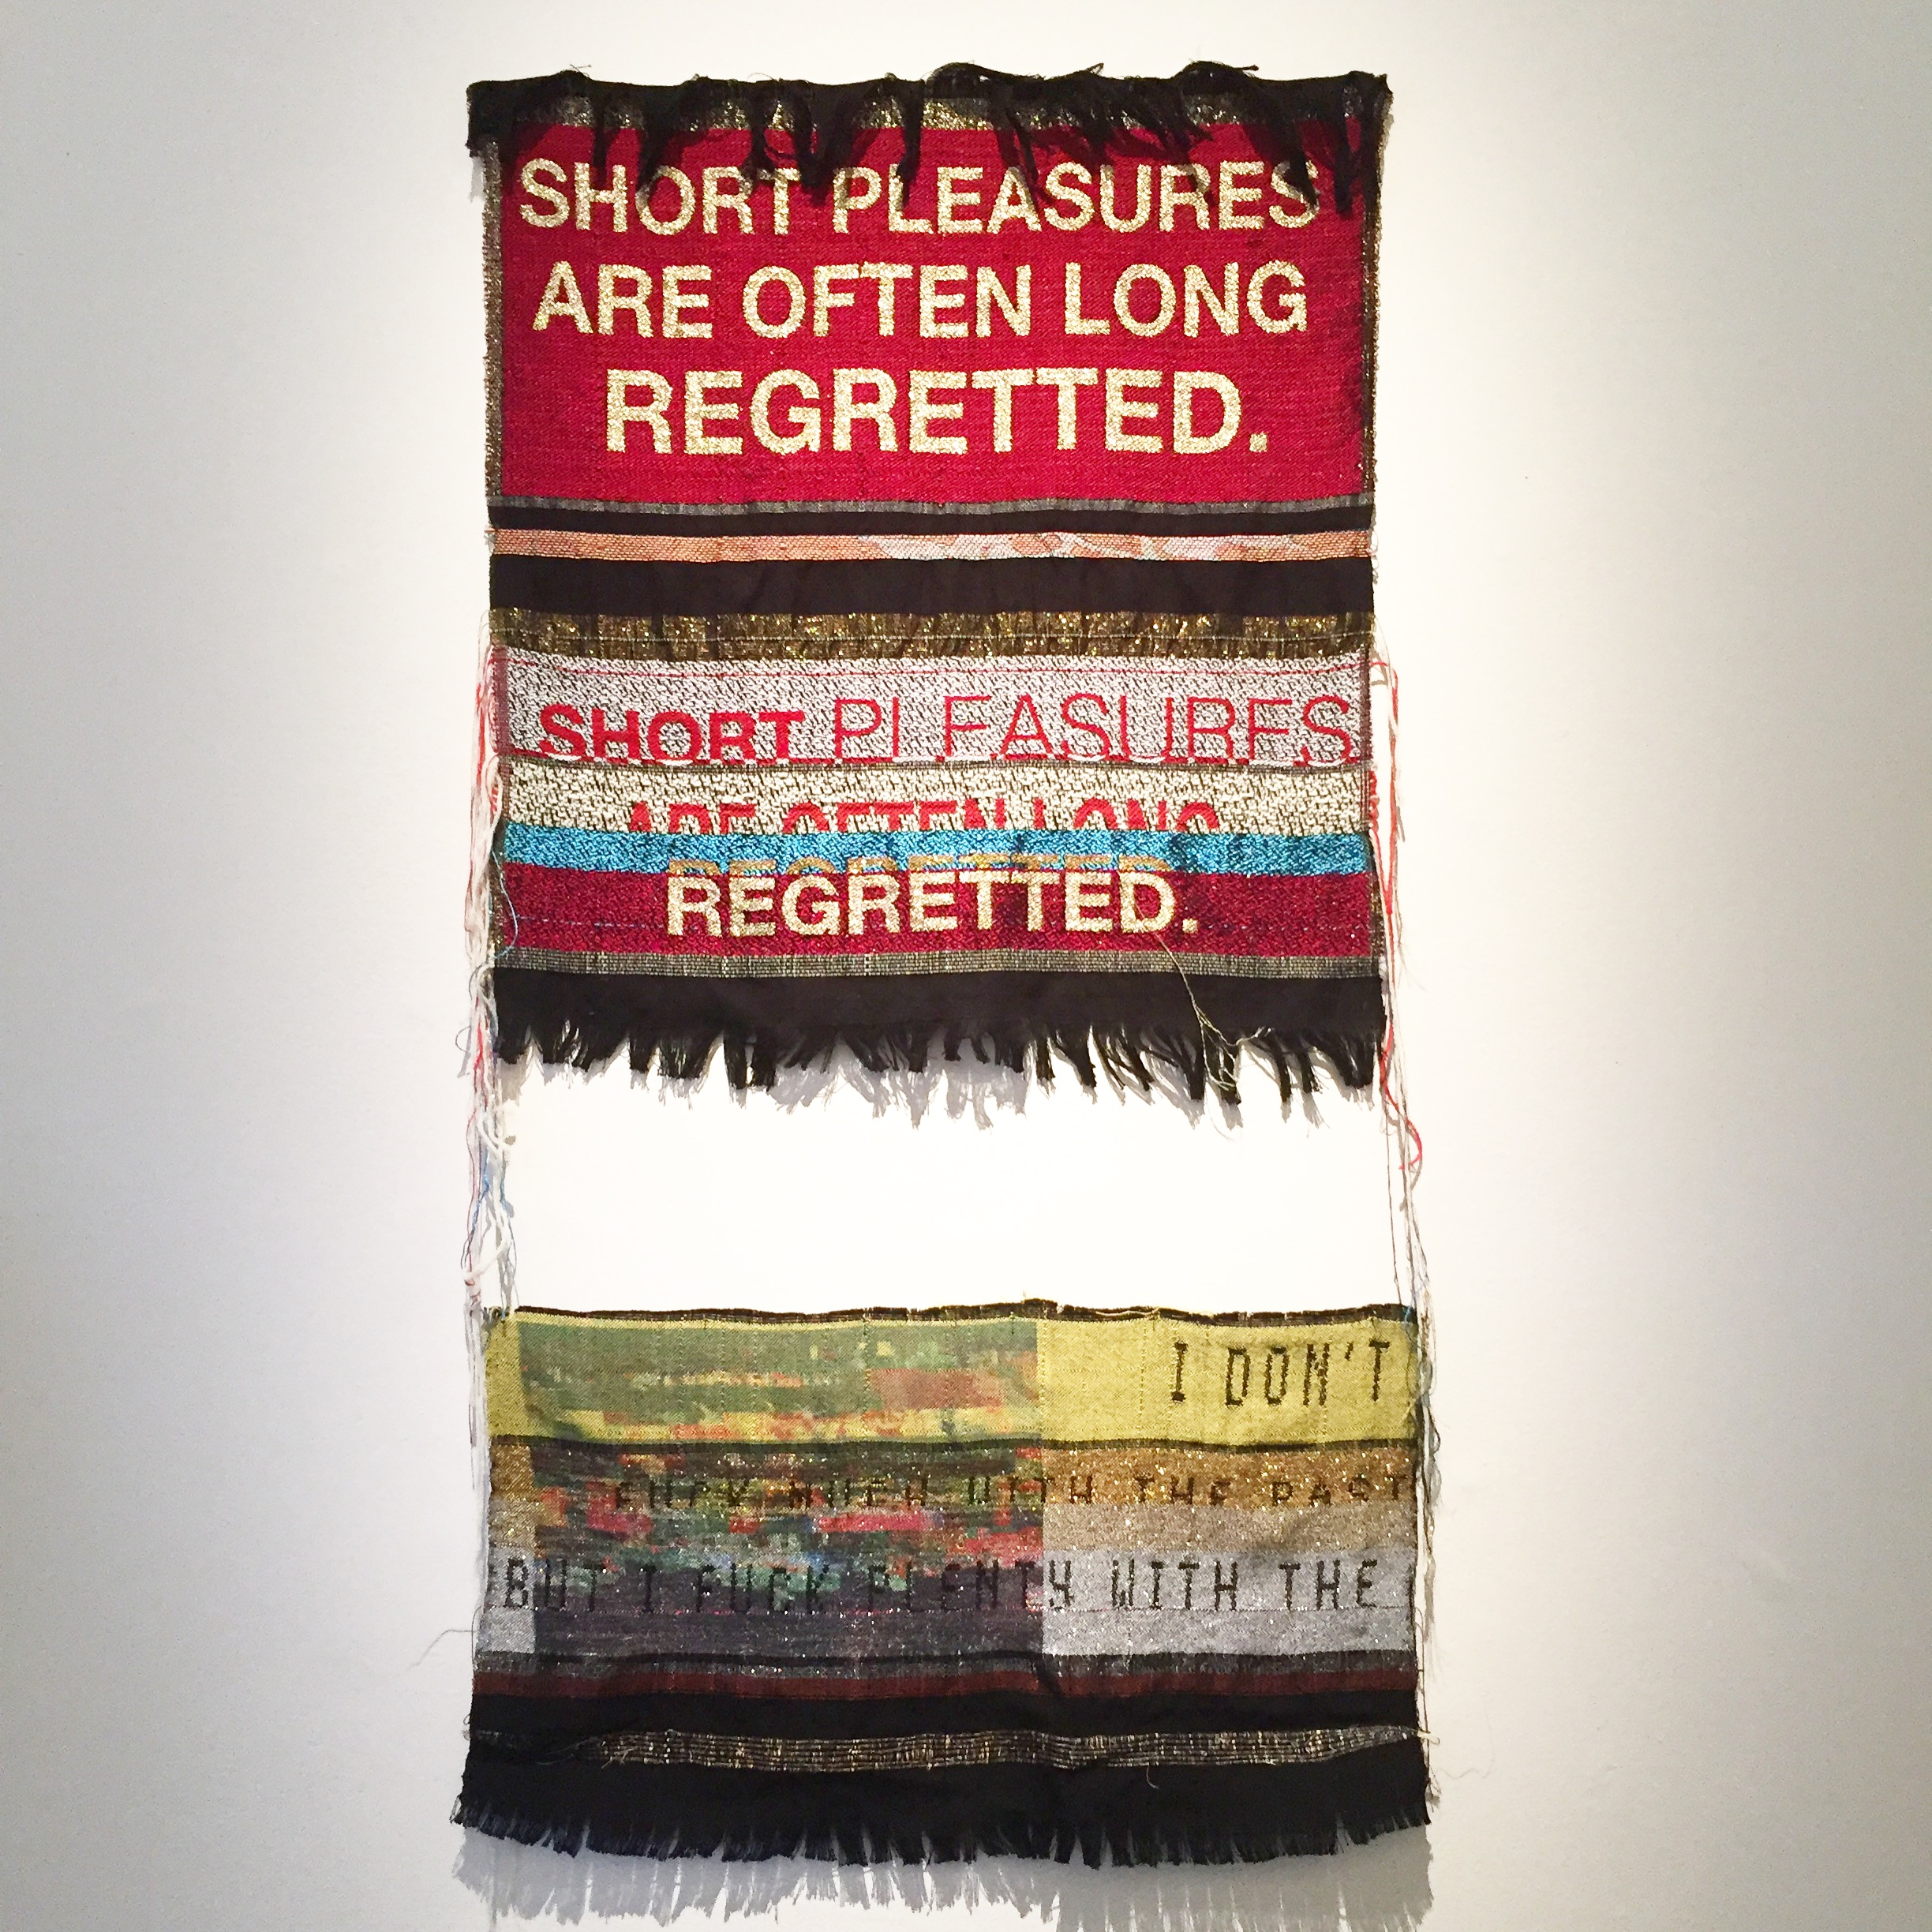 Danielle Andres's.  Short Pleasures, 2016 , and  I Don't Fuck Much With the Past, 2016 .Jacquard woven fabric, text.